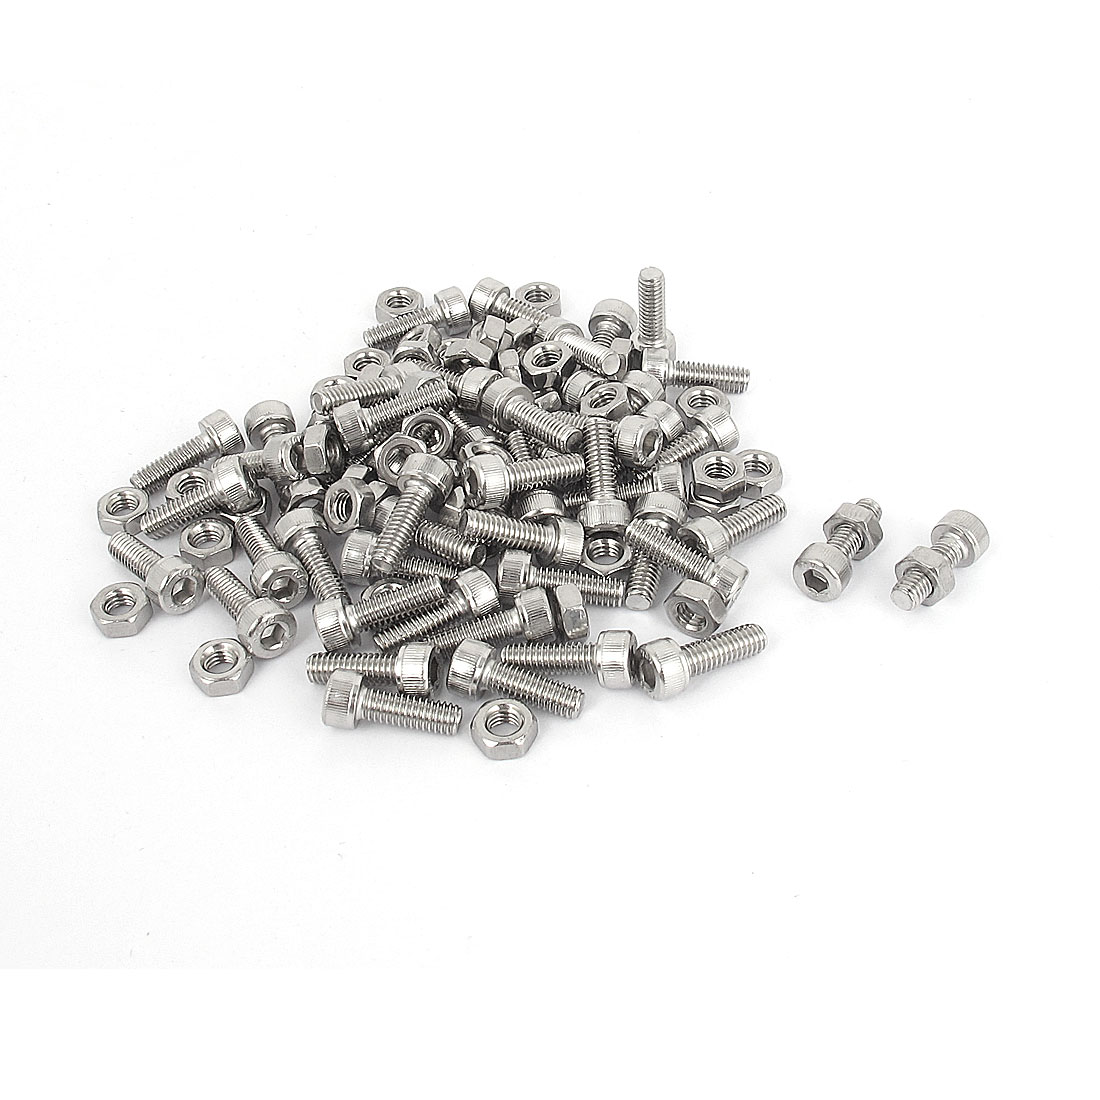 M4x12mm Stainless Steel Hex Socket Head Knurled Cap Screws Bolts Nut Set 50Pcs